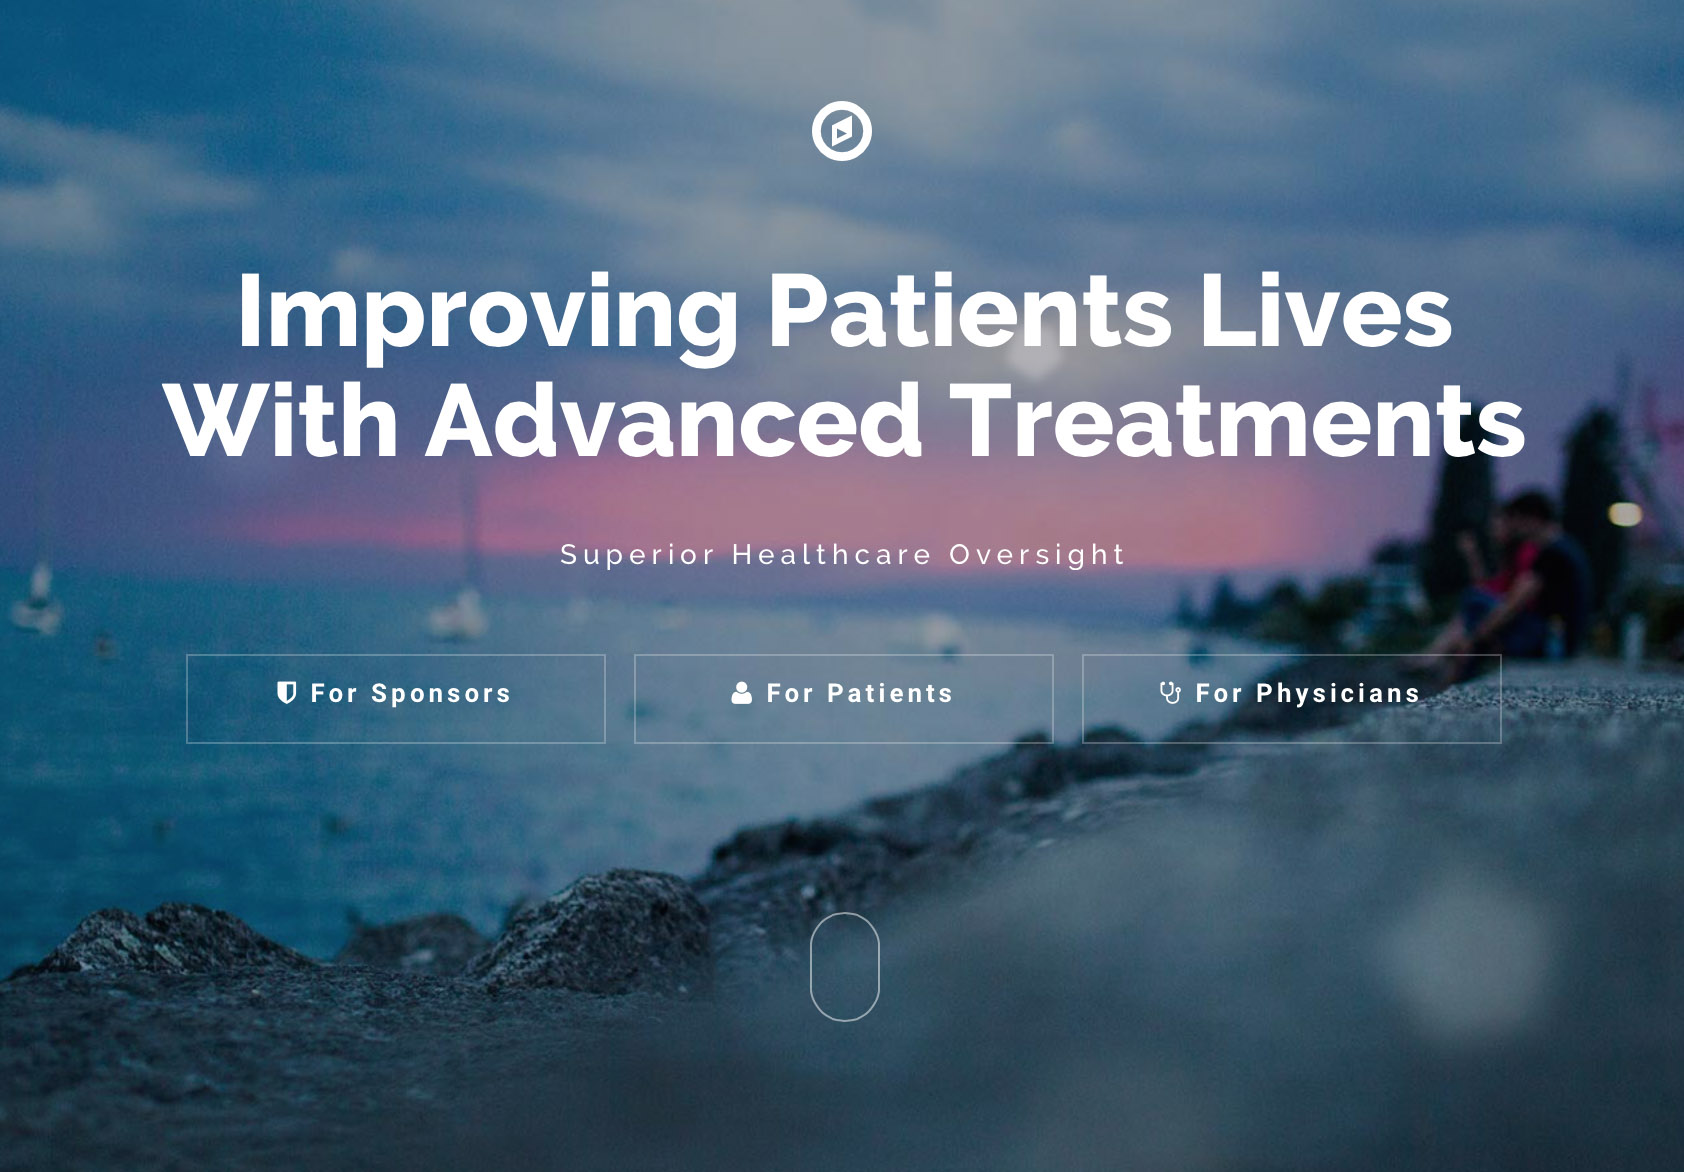 Give your patients access to the newest and most advanced medical treatments